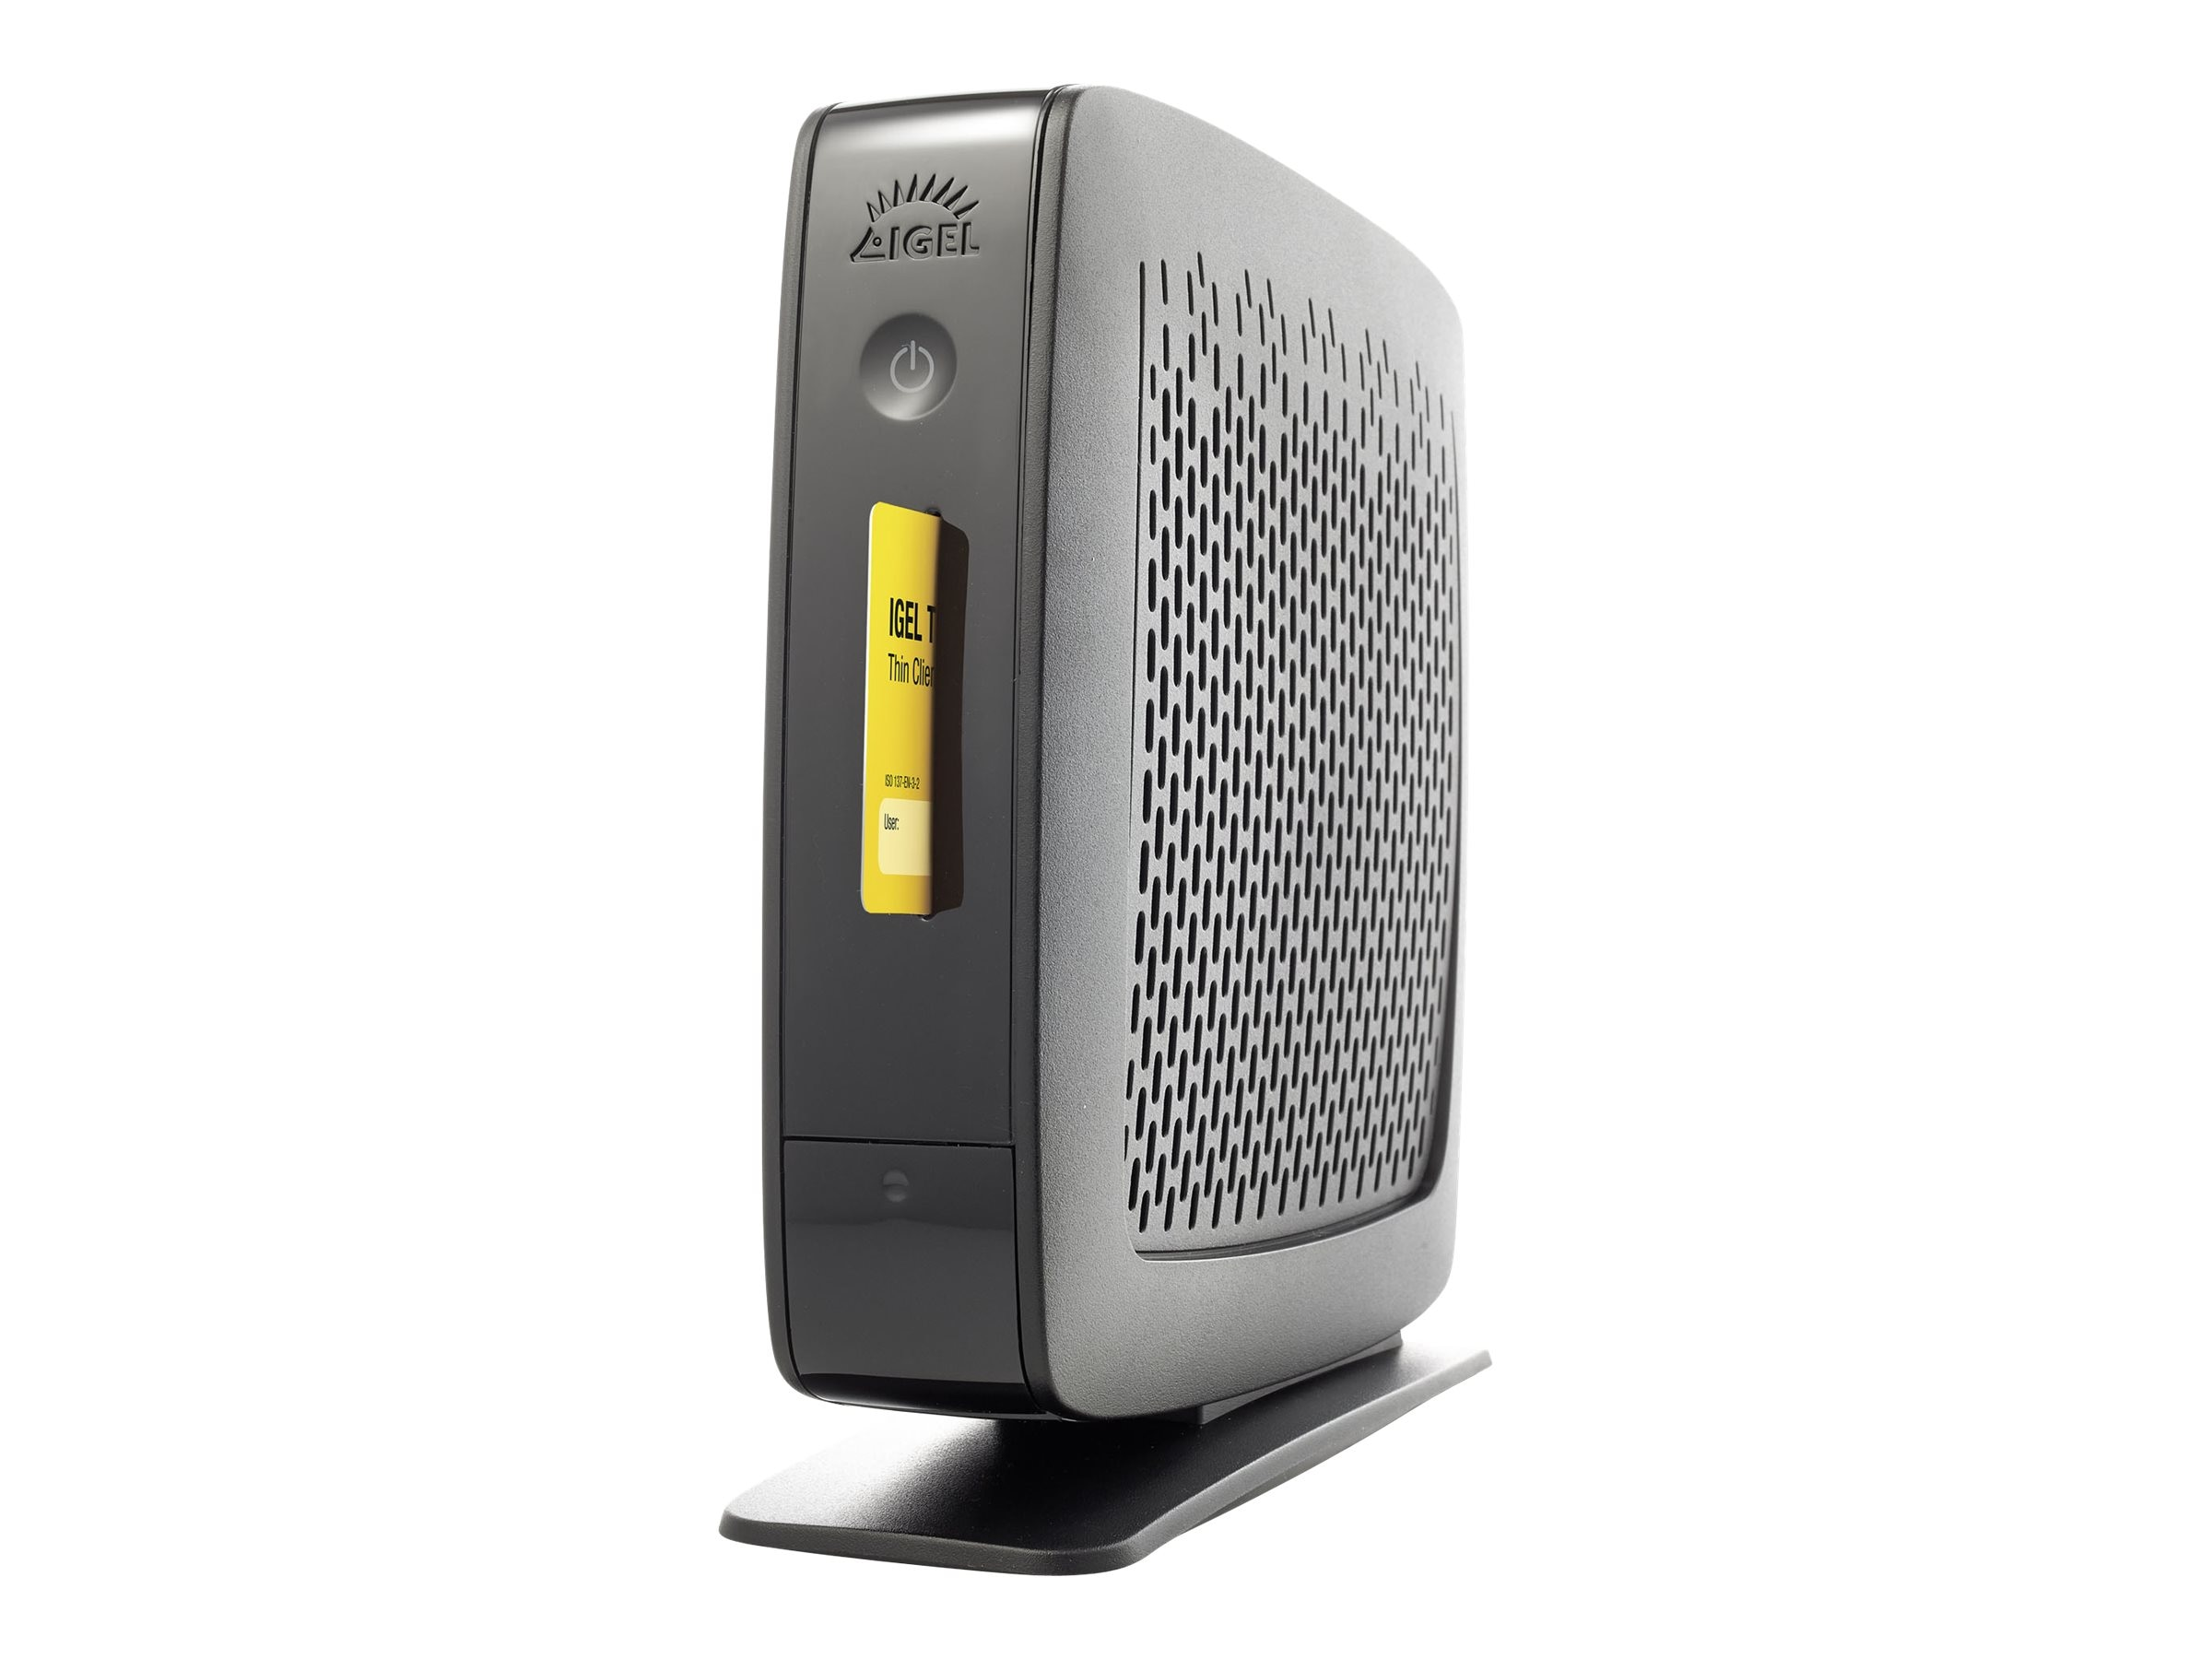 IGEL UD3 Universal Desktop Thin Client VIA Eden X2 1.0GHz 2GB RAM 4GB Flash GbE WES7